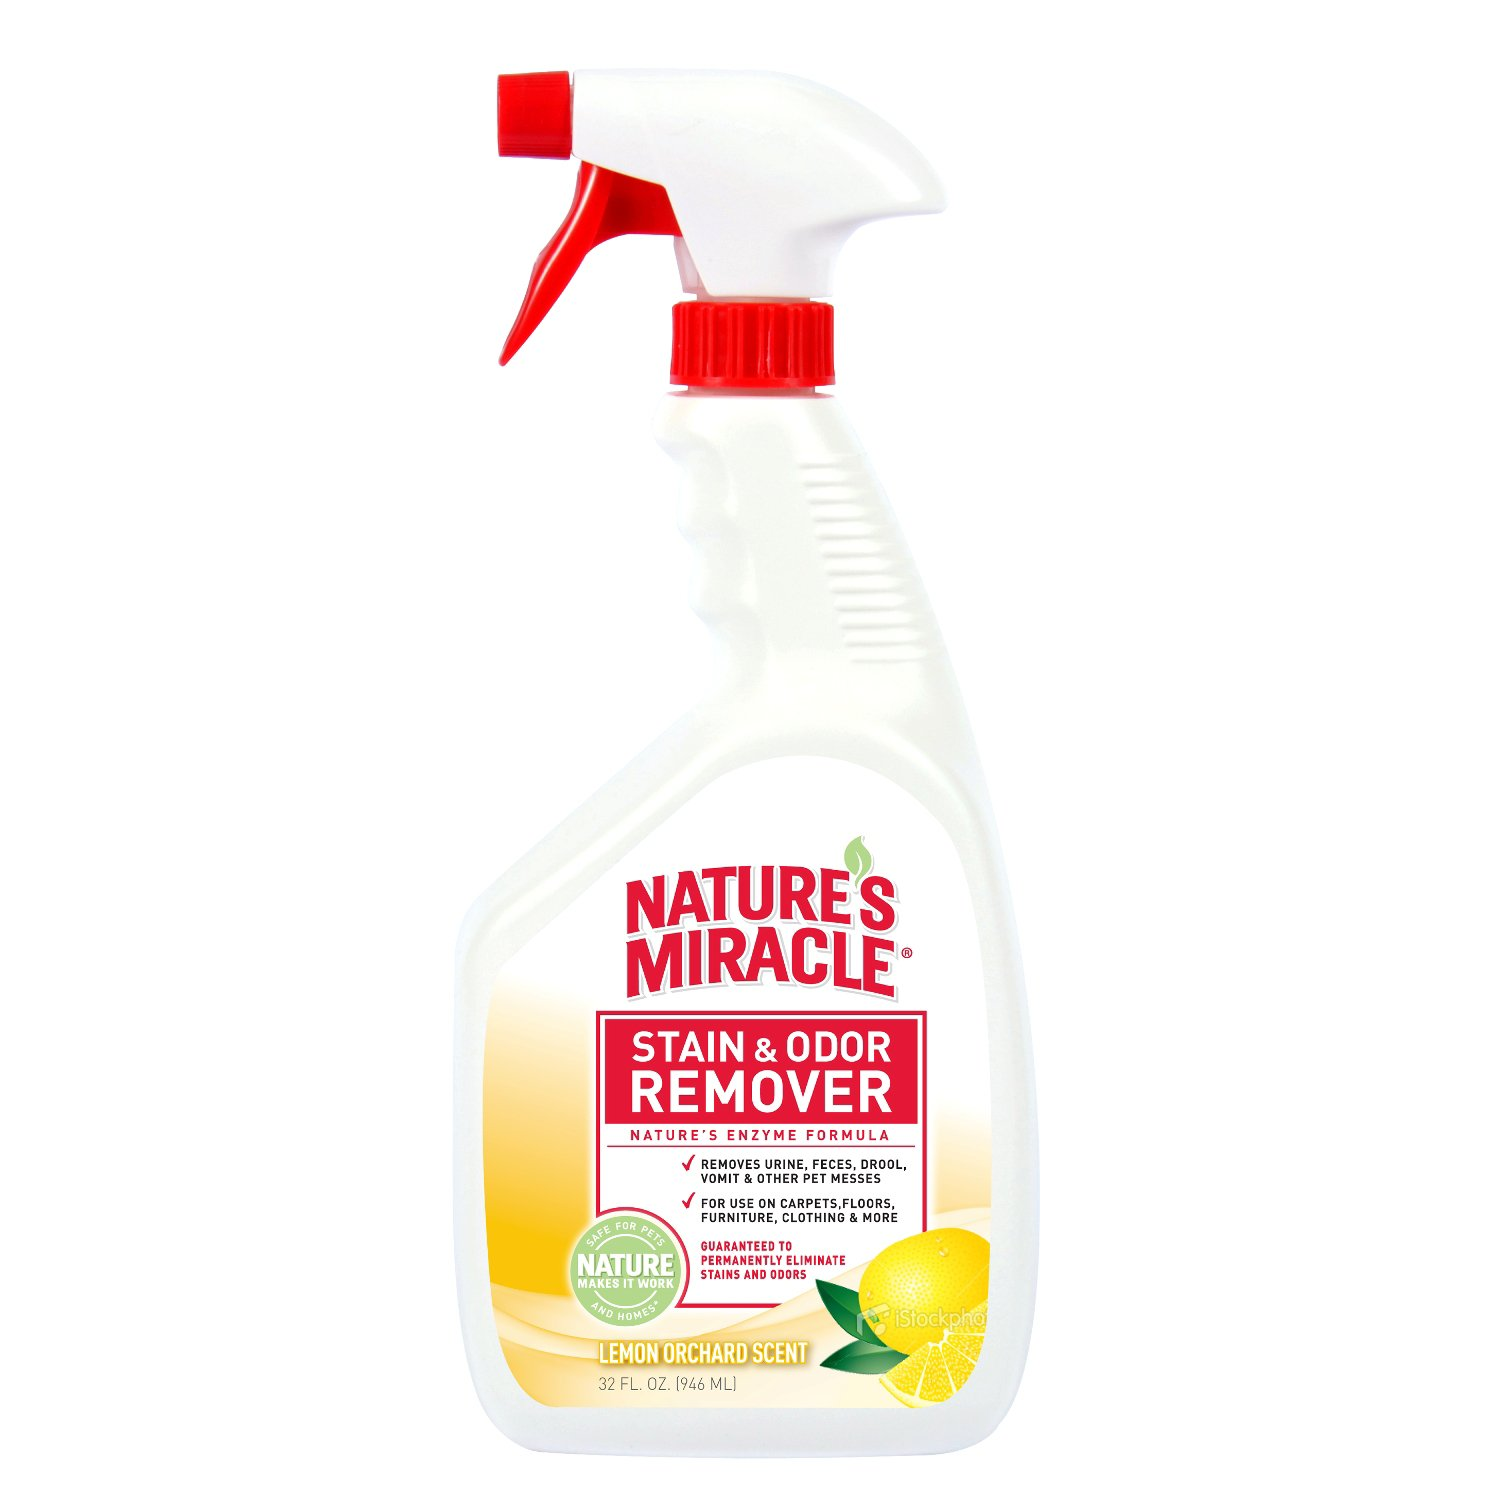 Nature's Miracle Lemon Scented Stain & Odor Remover